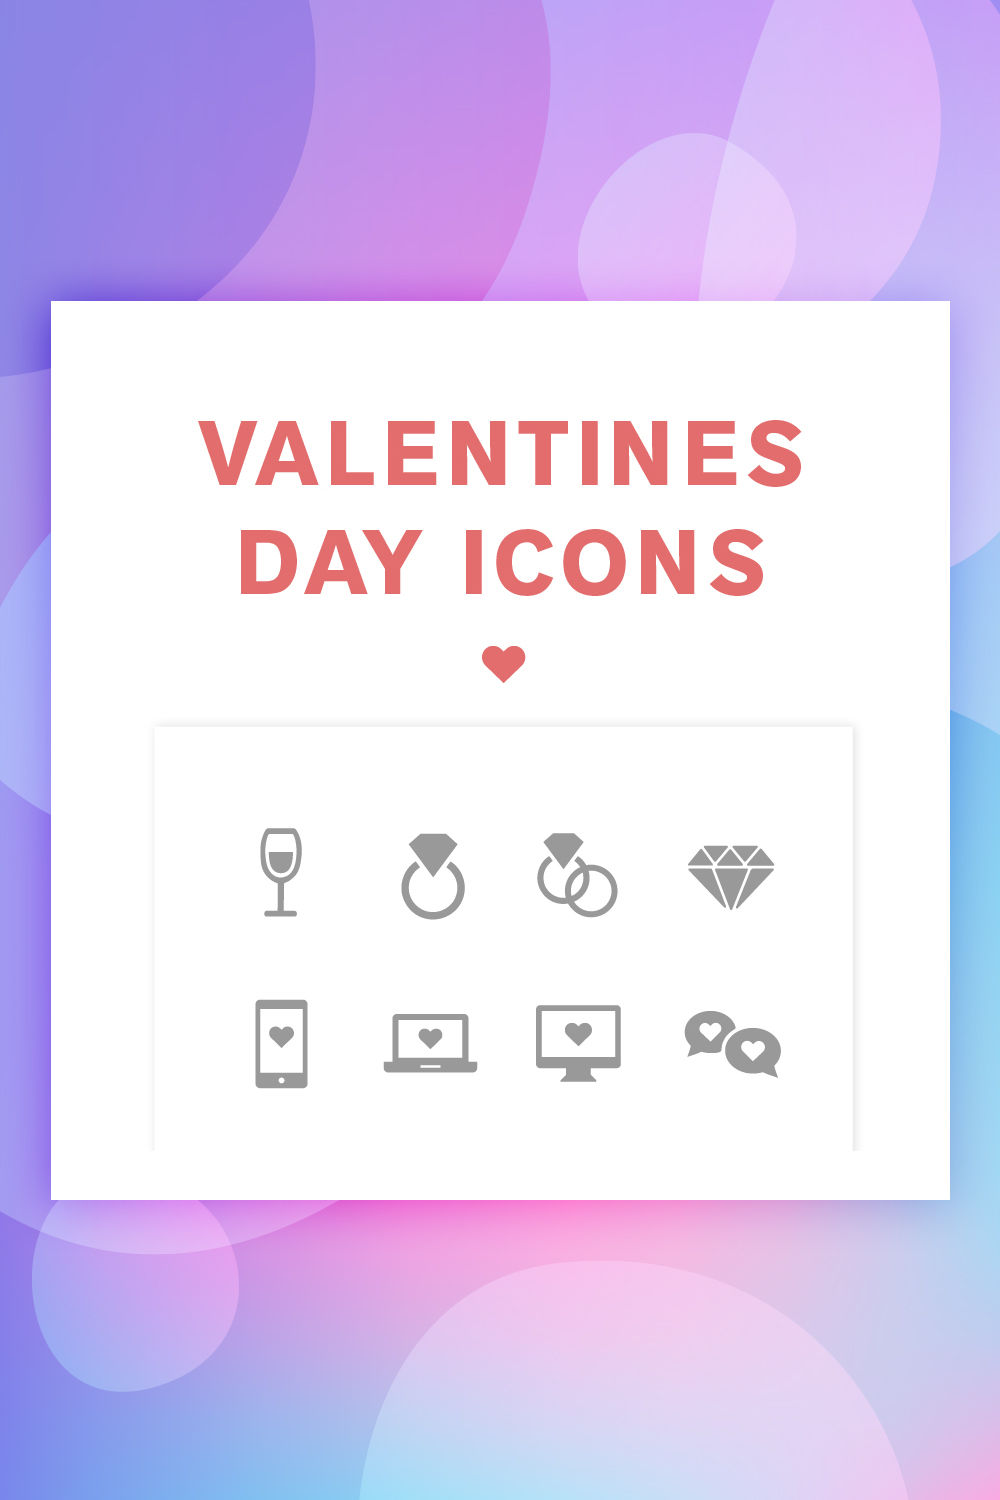 Valentine's Day Iconset Template